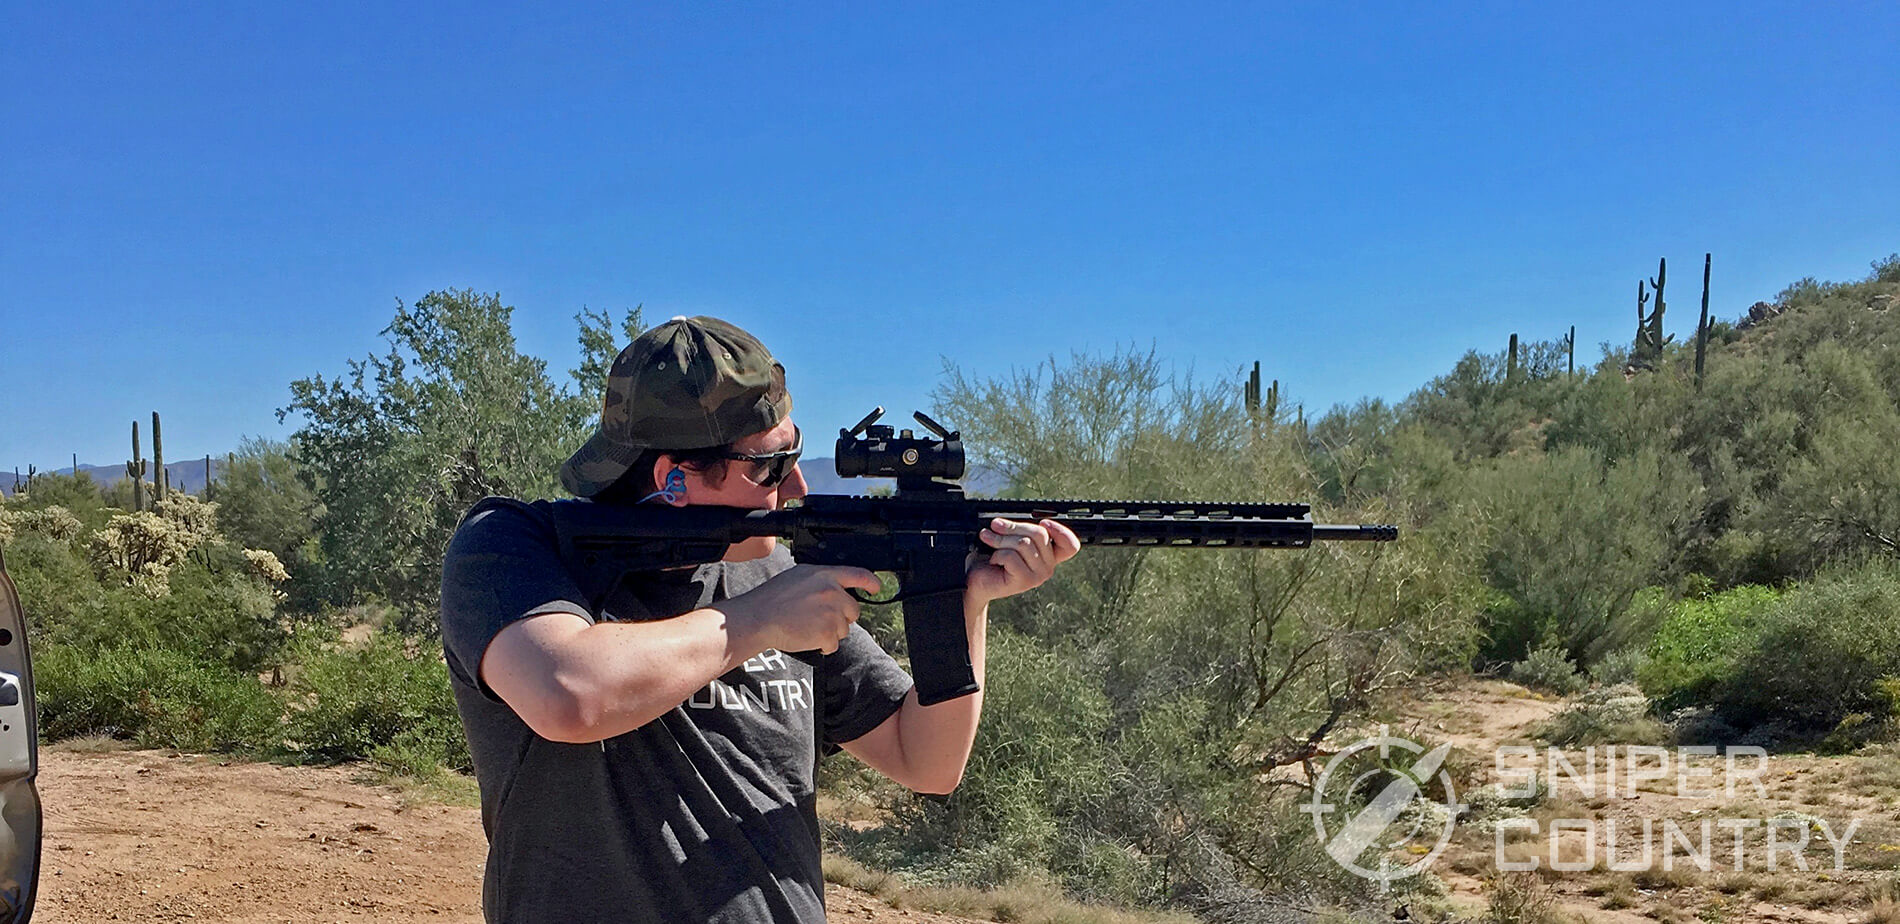 Author Shooting his AR-15